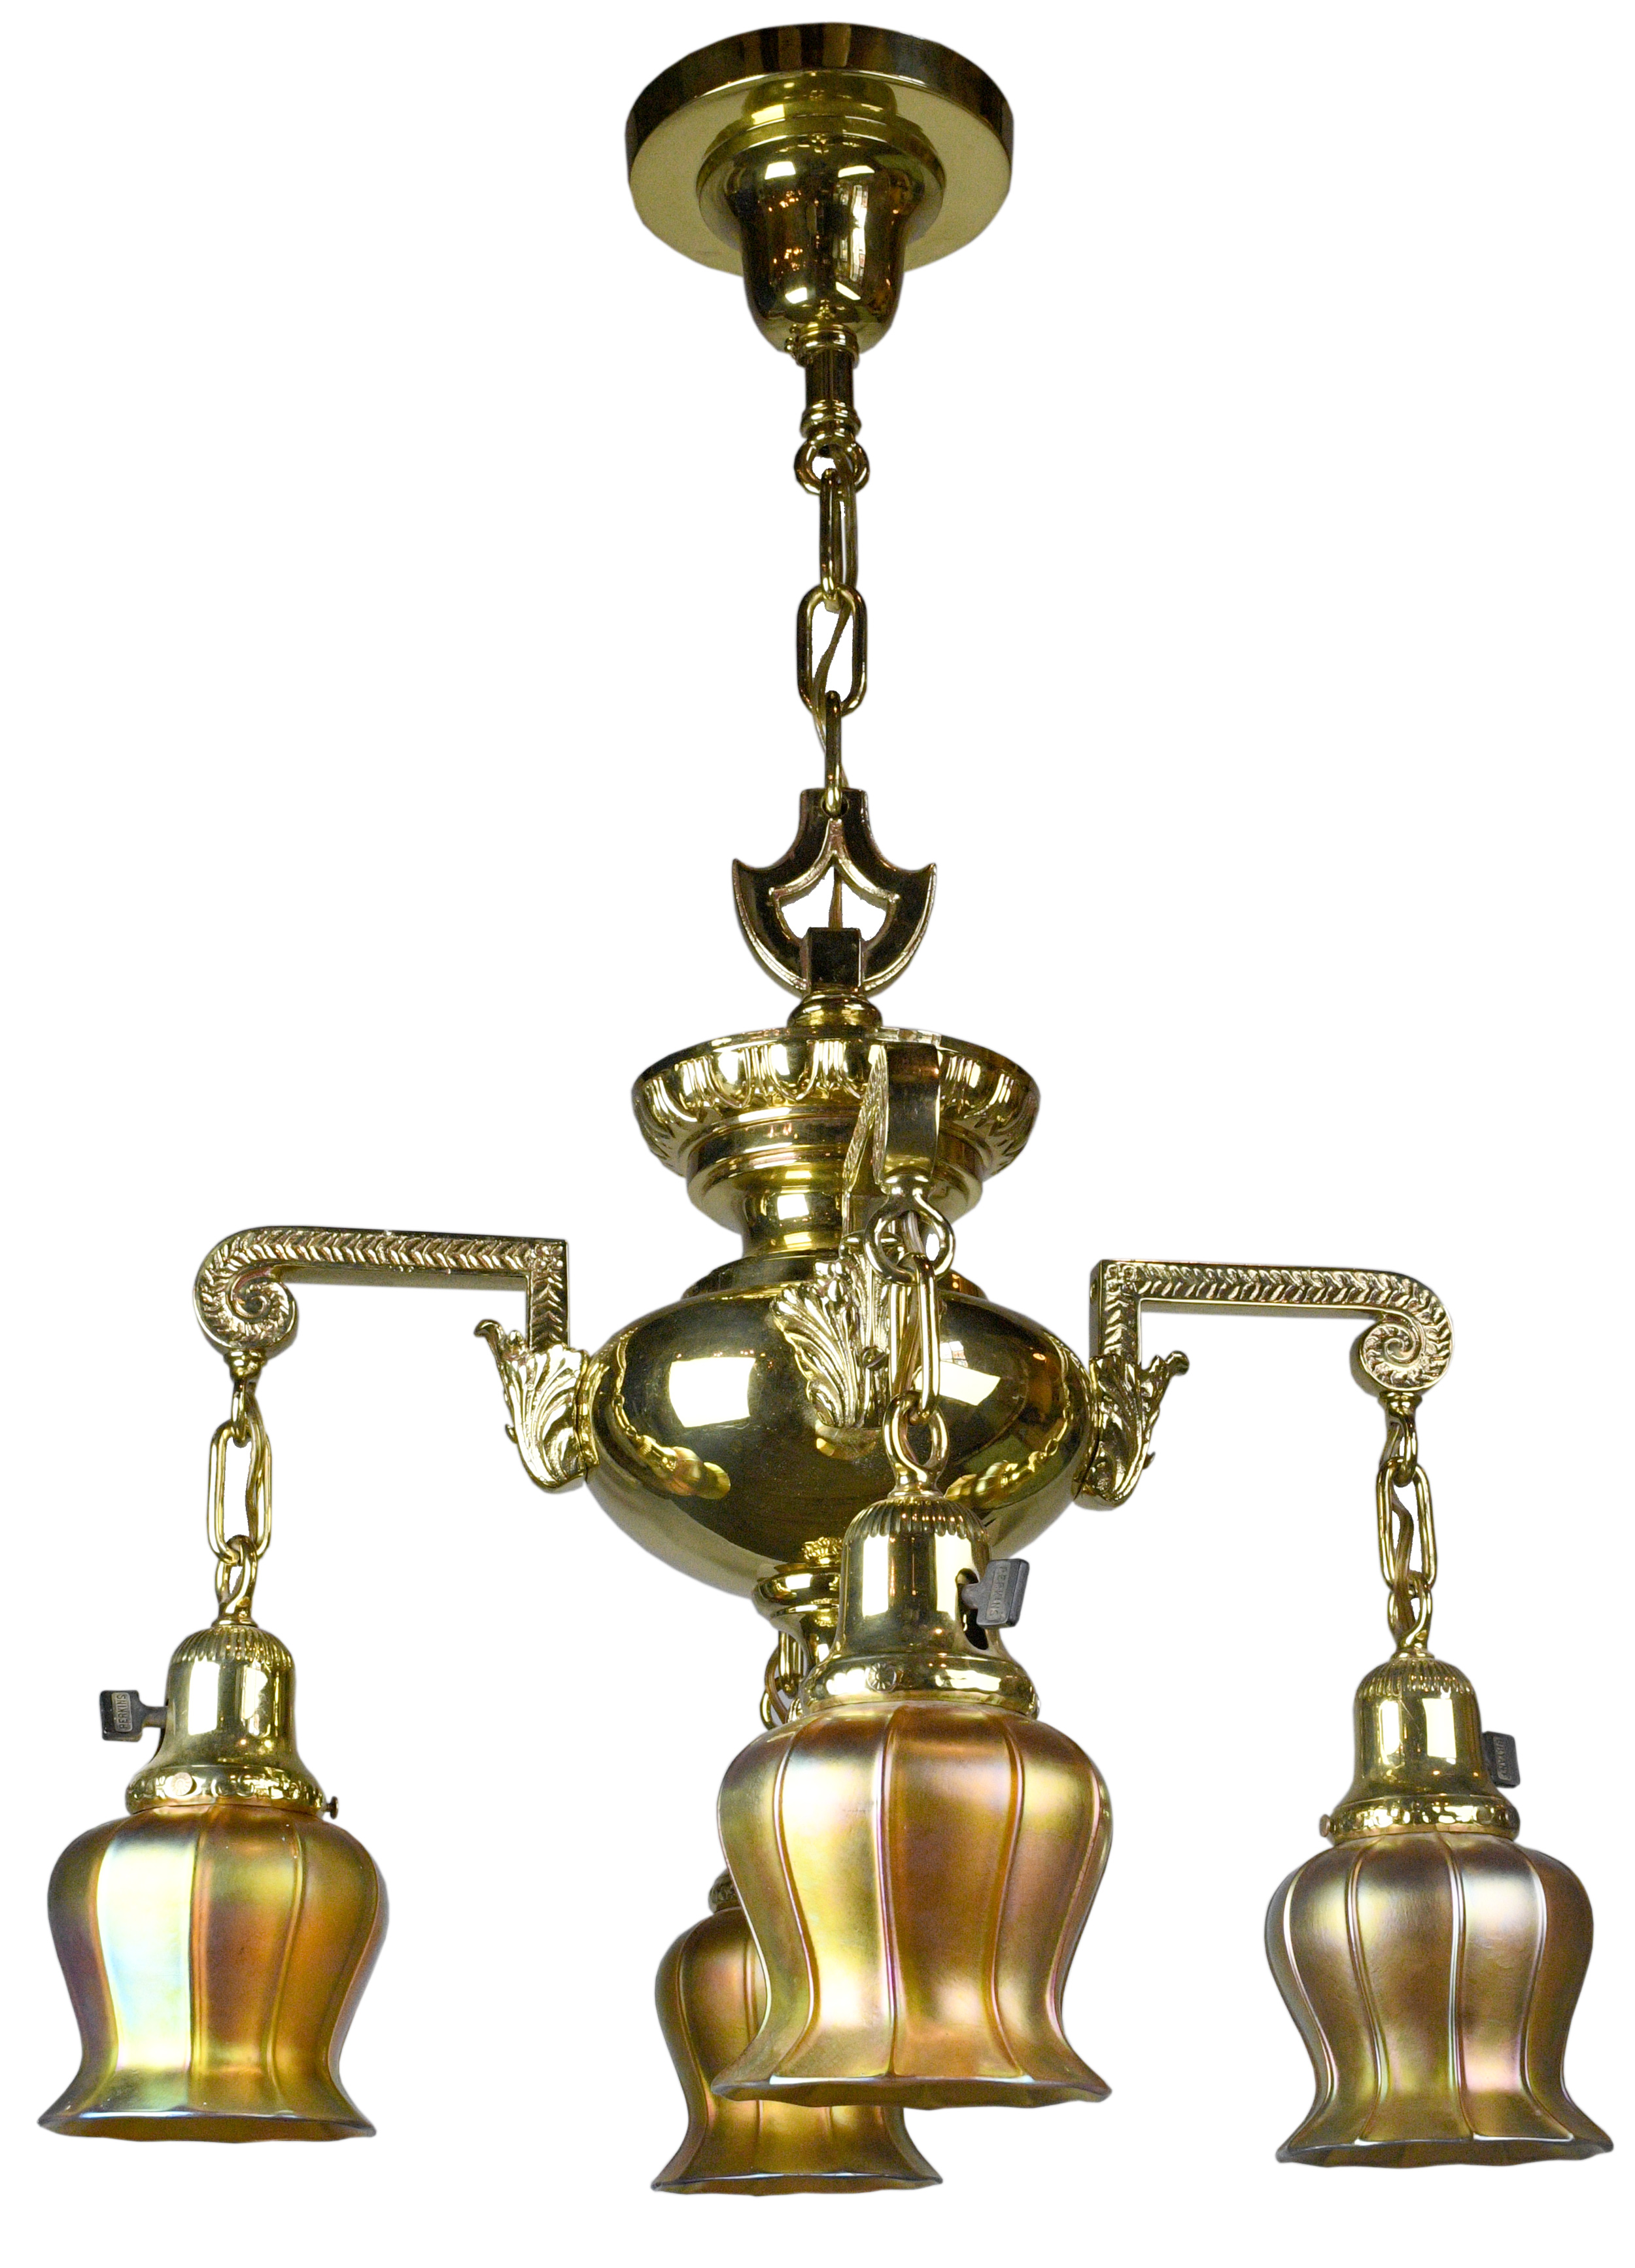 brass 4-arm victorian chandelier with quezal shades